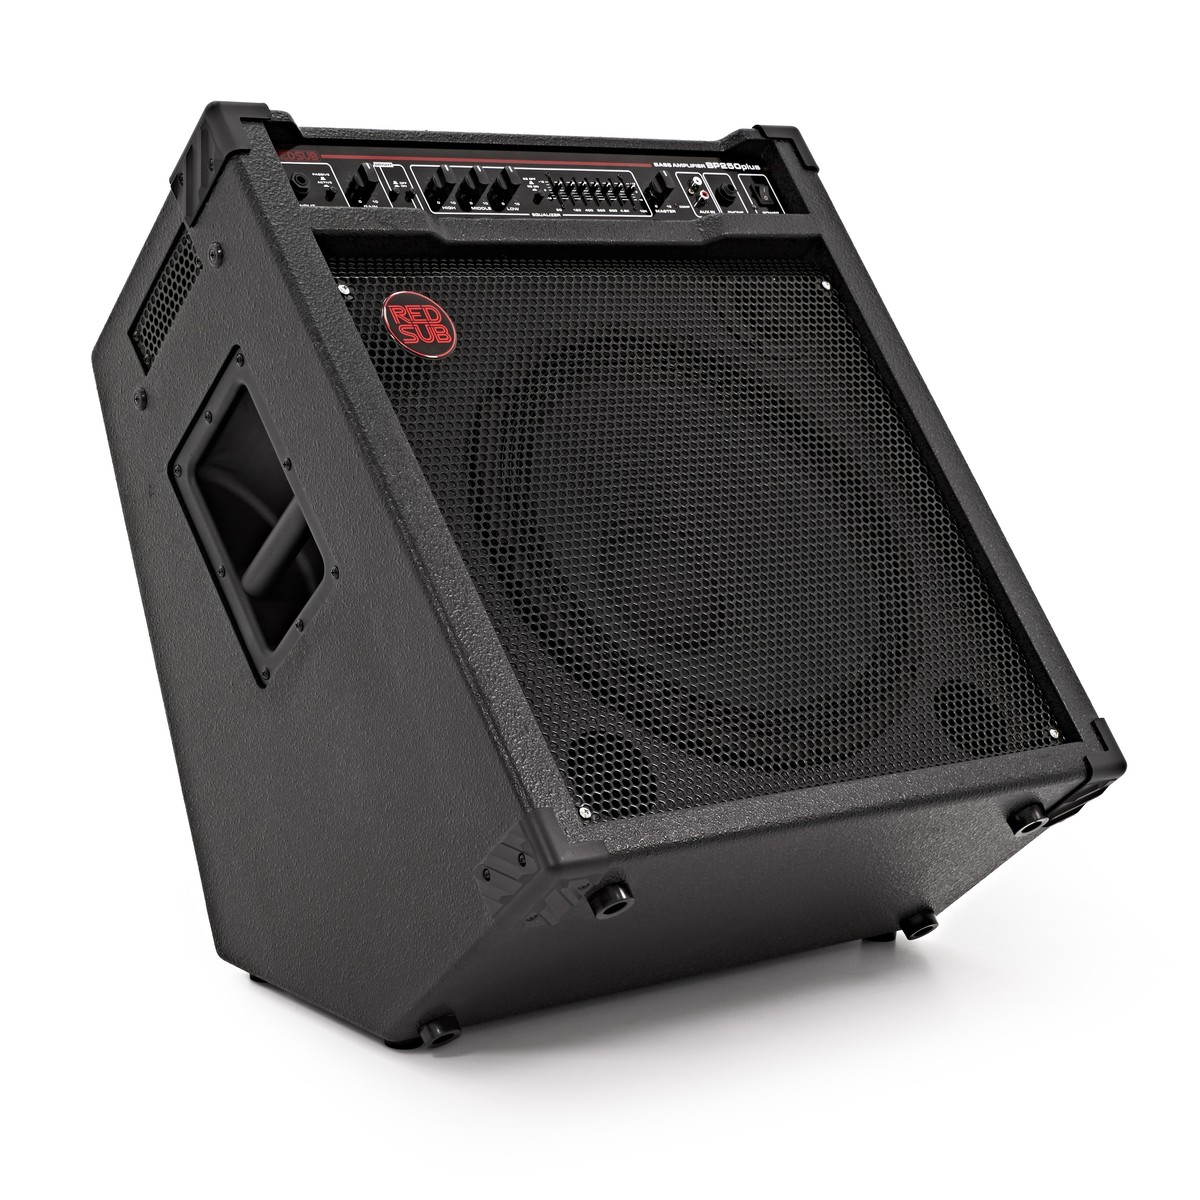 redsub bp250plus 250w bass guitar amplifier at gear4music. Black Bedroom Furniture Sets. Home Design Ideas